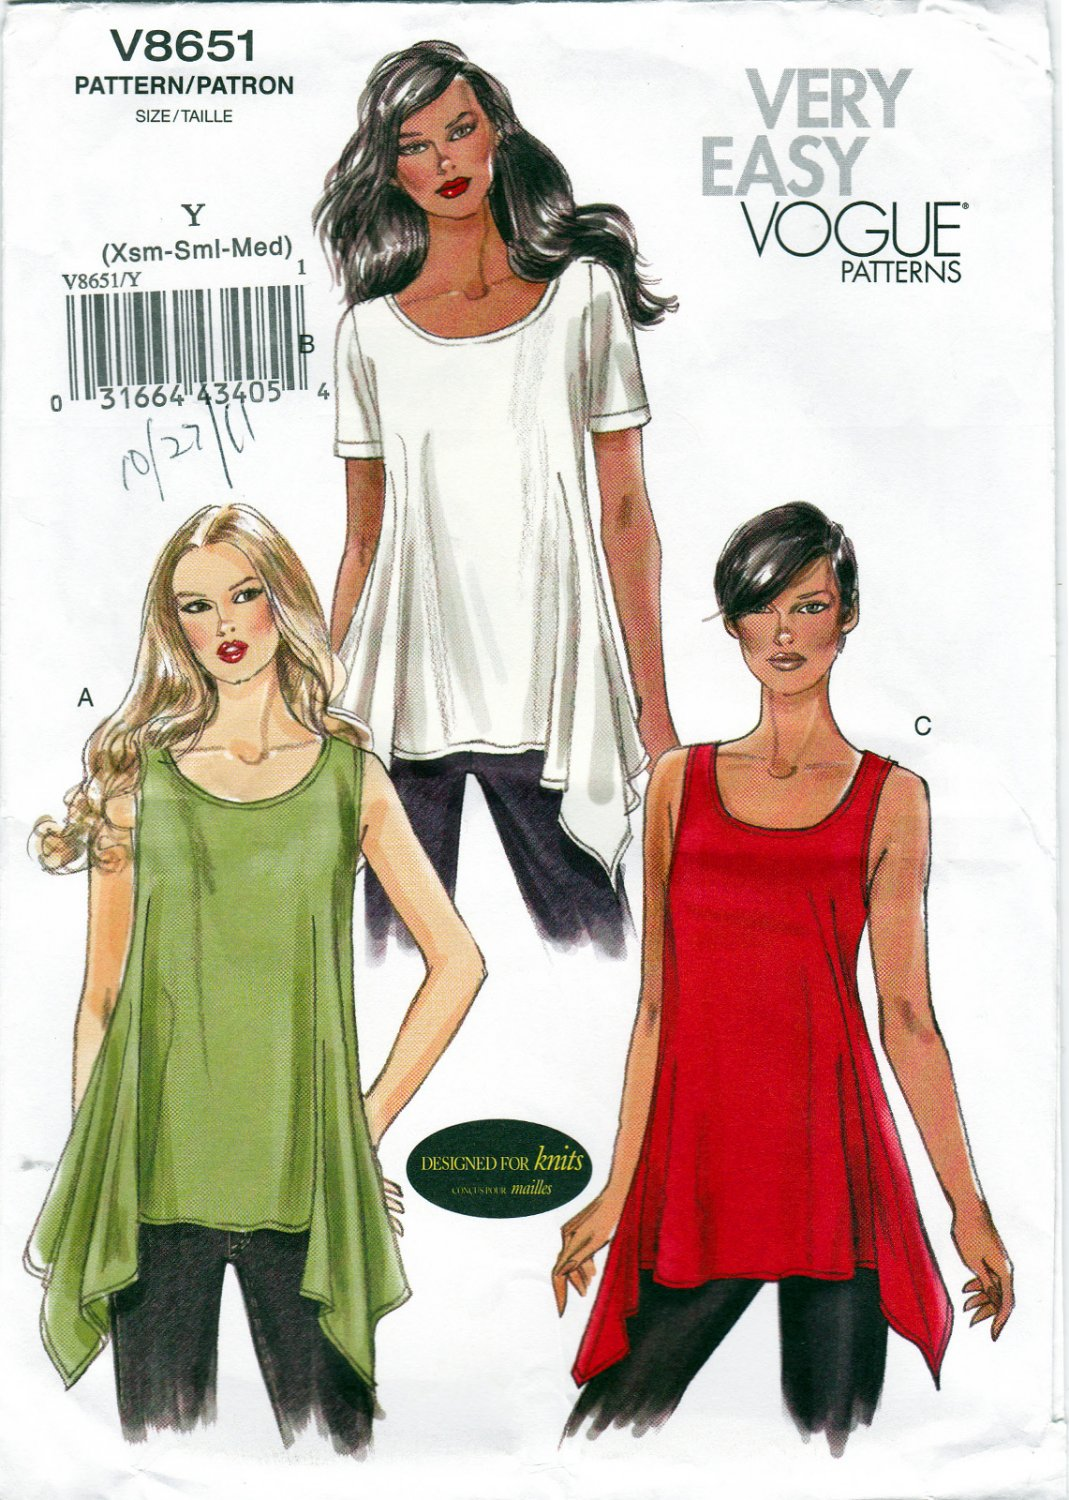 Vogue V8651 8651 Misses Tunics Sewing Pattern Sizes Xsm-Sml-Med Very Easy Sew